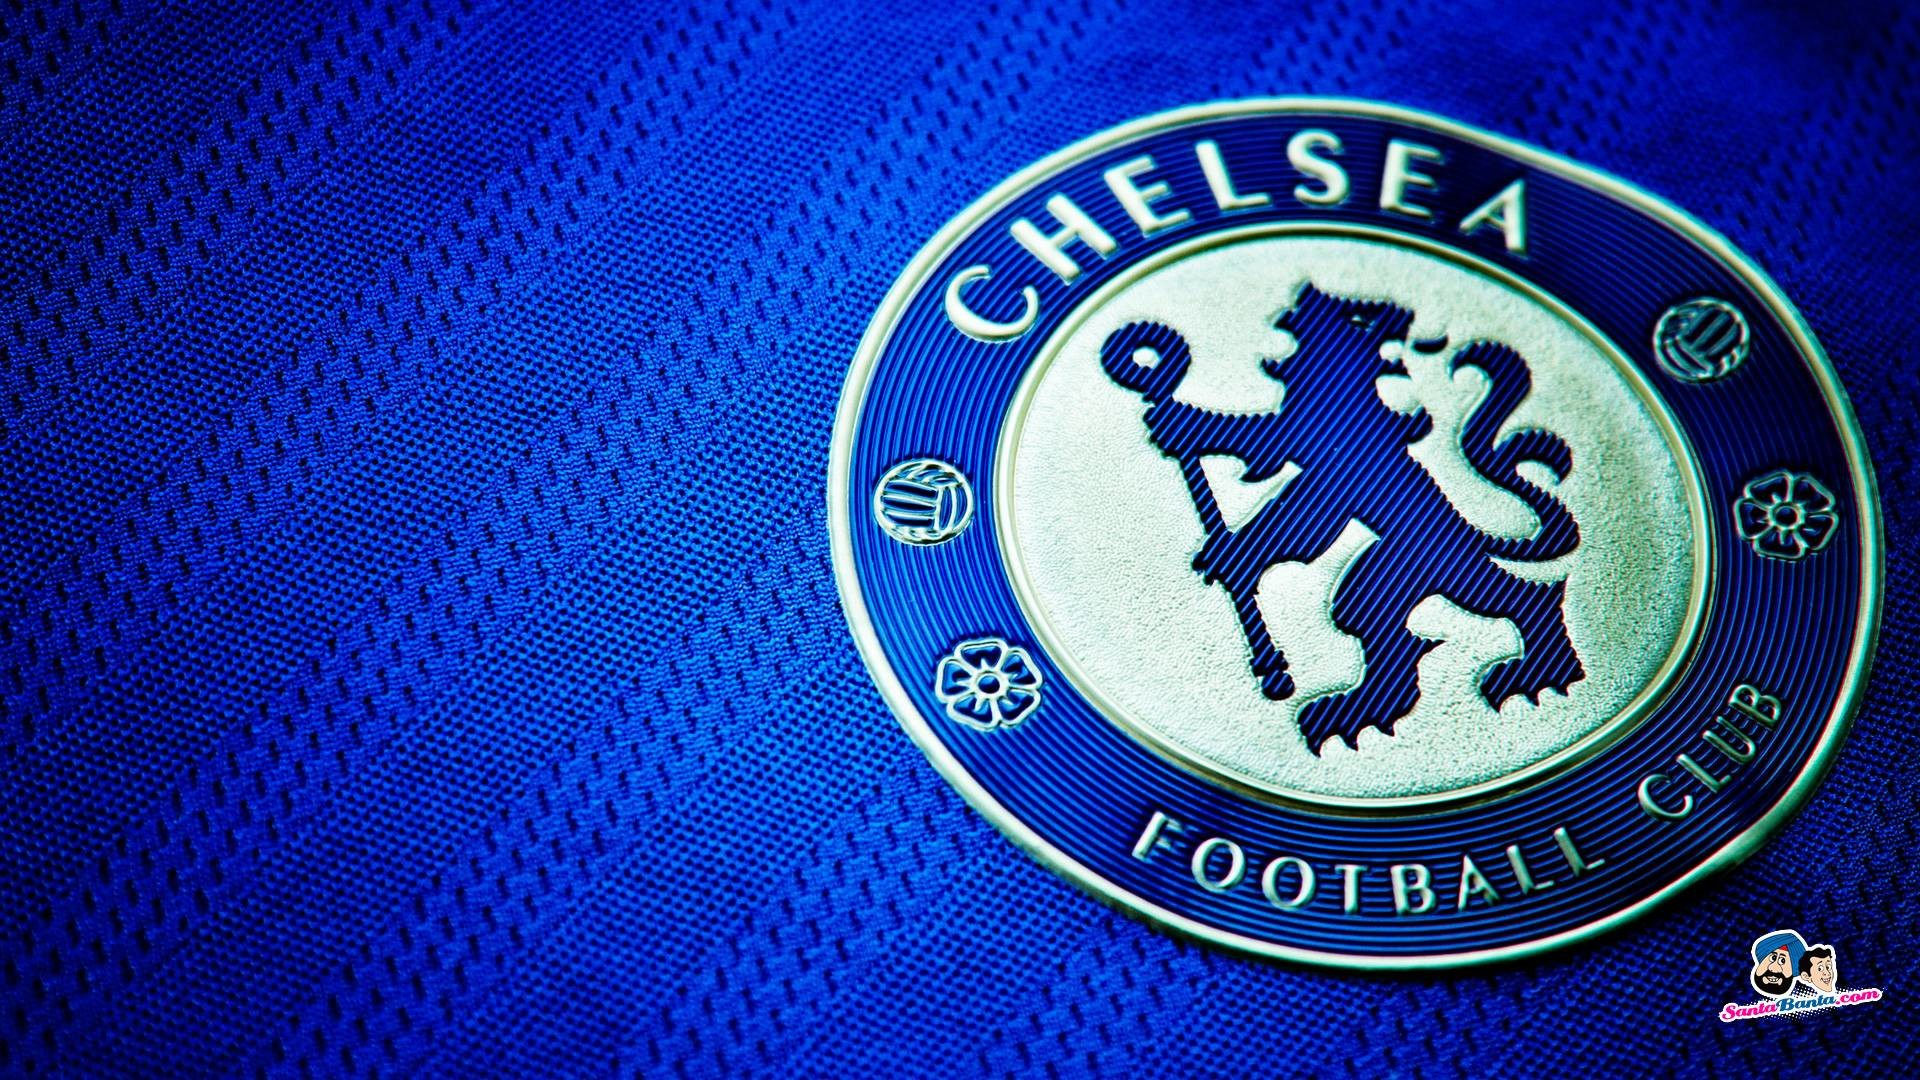 1920x1080 Chelsea Fc Wallpapers 2016